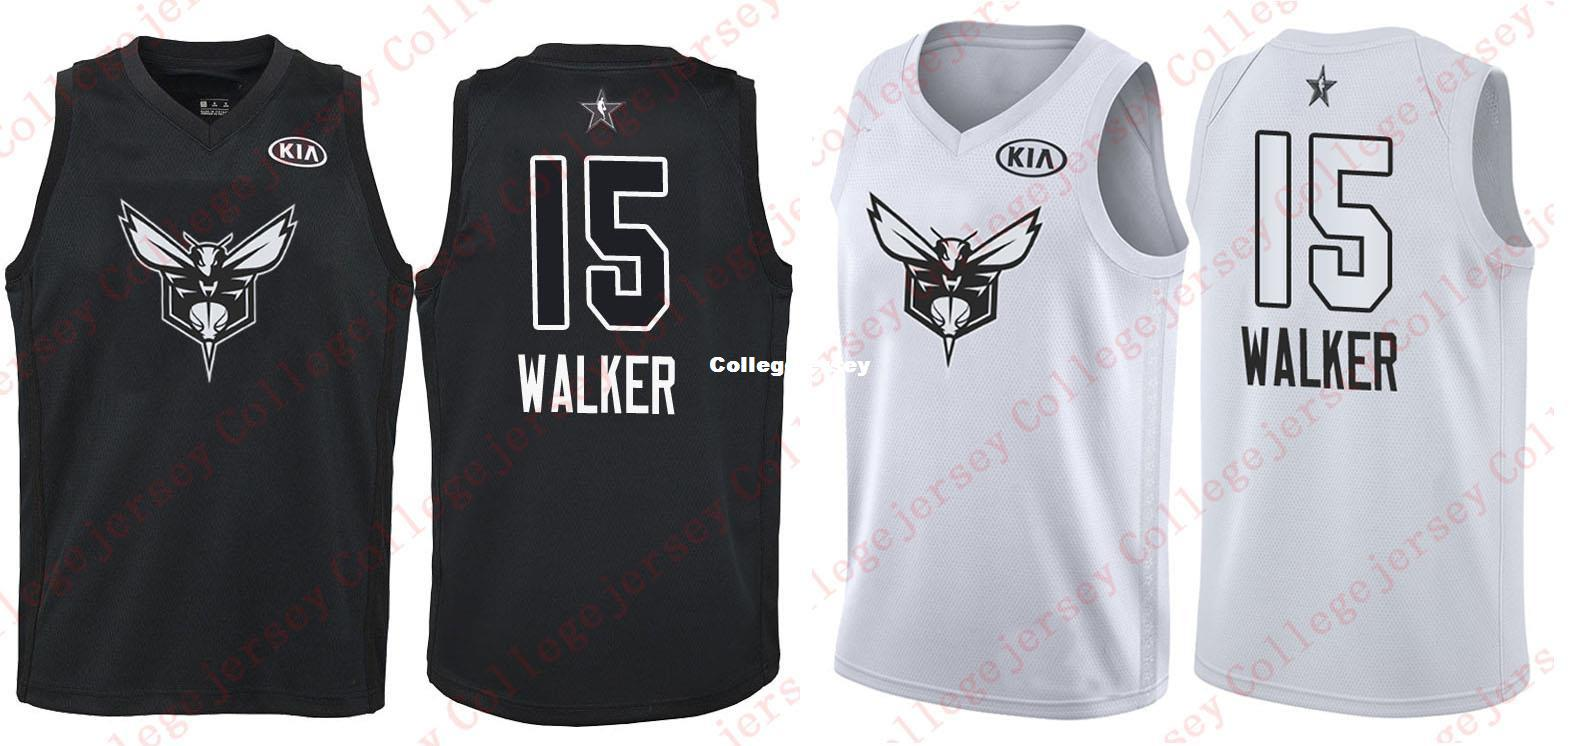 new style 1bc2f c1581 best price kemba walker jersey shirt 49559 a0ff1